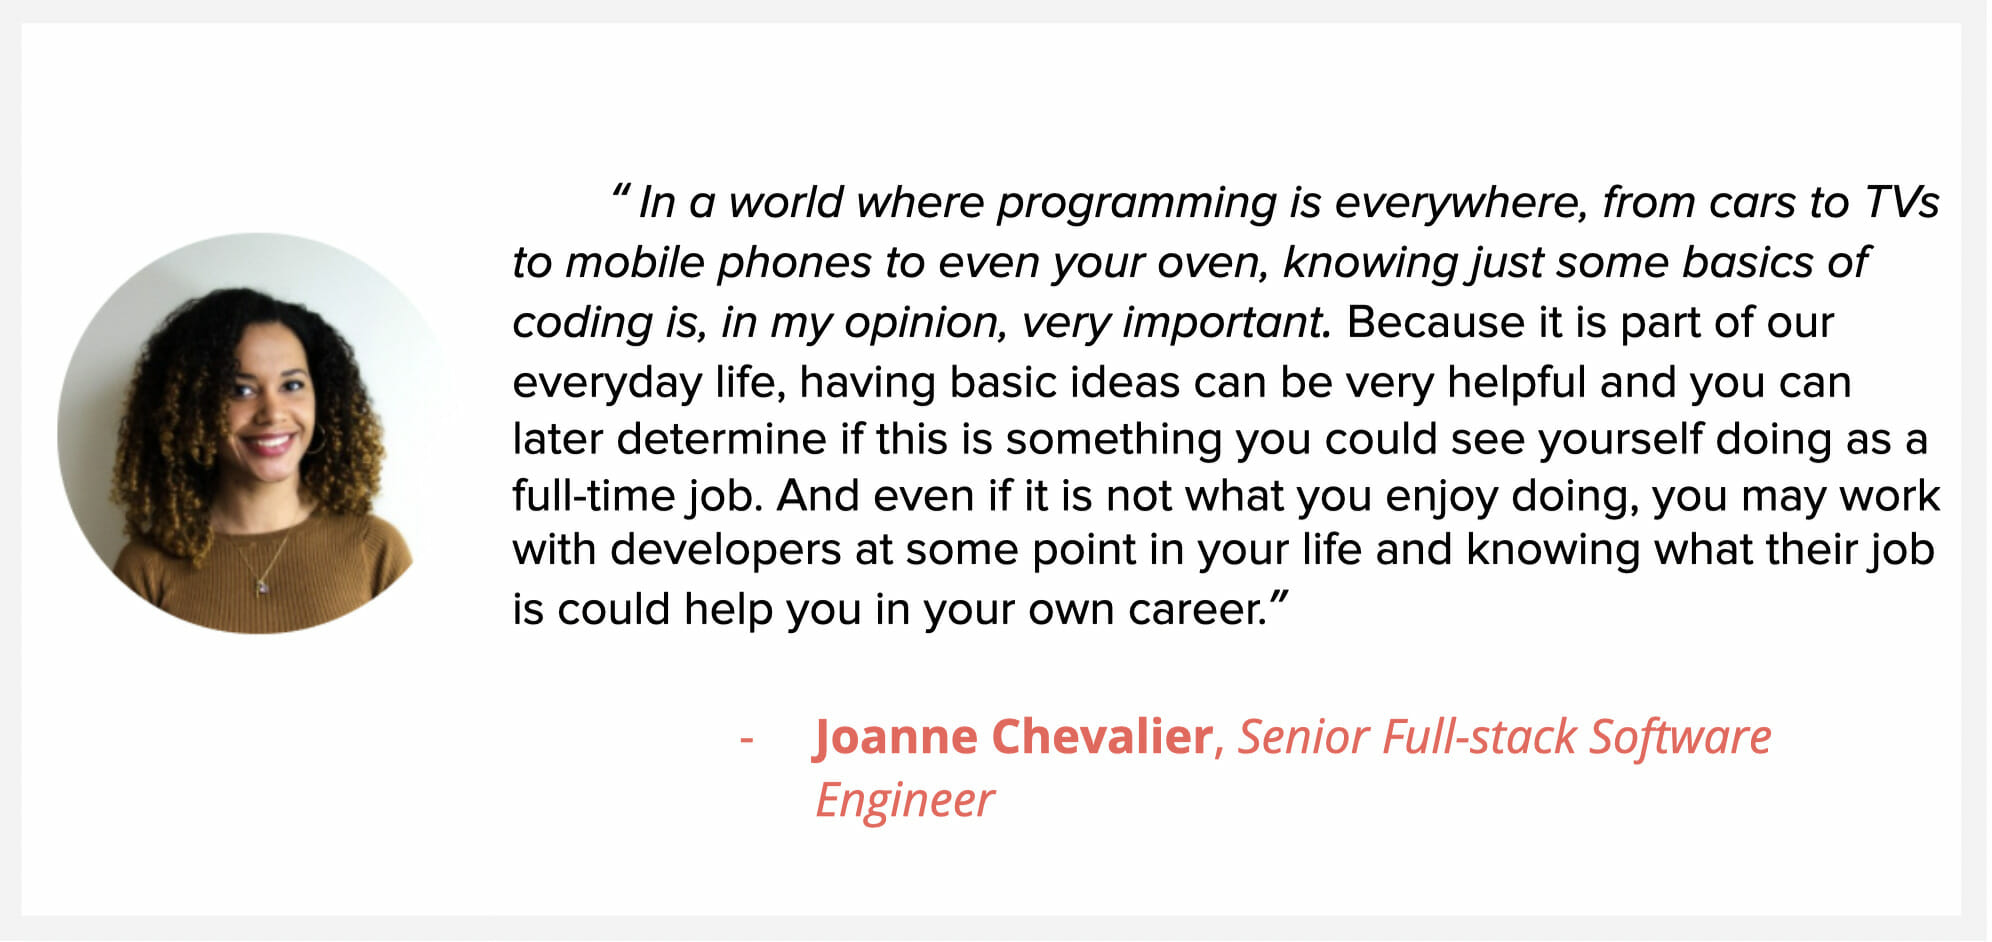 """Sr. Full Slack developer Joanne Chevalier, says """"In a world where programming is everywhere, from cars to TVs to mobile phones to even your oven, knowing just some basics of coding is, in my opinion, very important. Because it is part of our everyday life, having basic ideas can be very helpful and you can later determine if this is something you could see yourself doing as a full-time job. And even if it is not what you enjoy doing, you may work with developers at some point in your life and knowing what their job is could help you in your own career."""""""